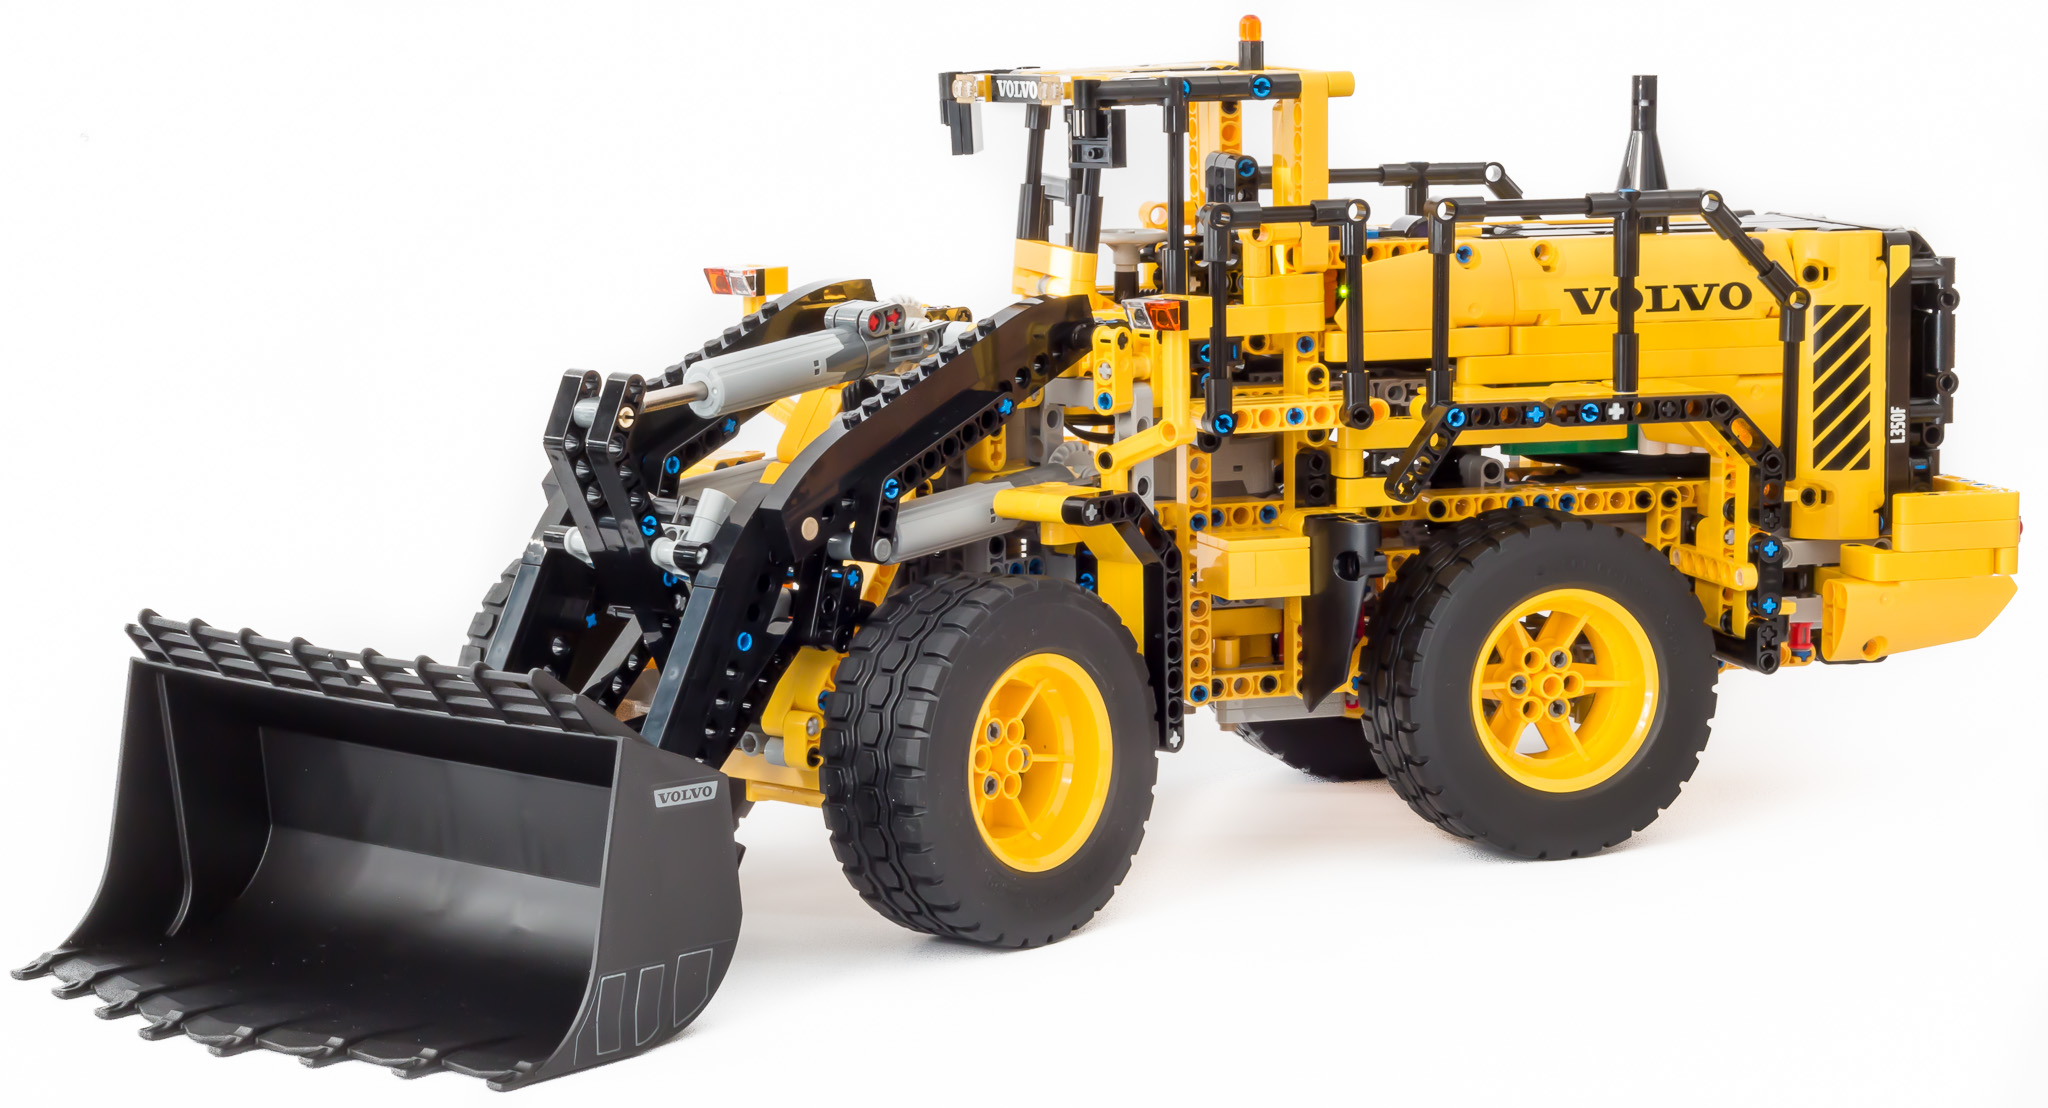 lego helicopter 9396 with  on Mini Mobile Crane 8067 together with LEGO Technic 9396 Rescue Helicopter besides LEGO Technic 9396 Rescue Helicopter further Interesting also Logging Truck 9397.